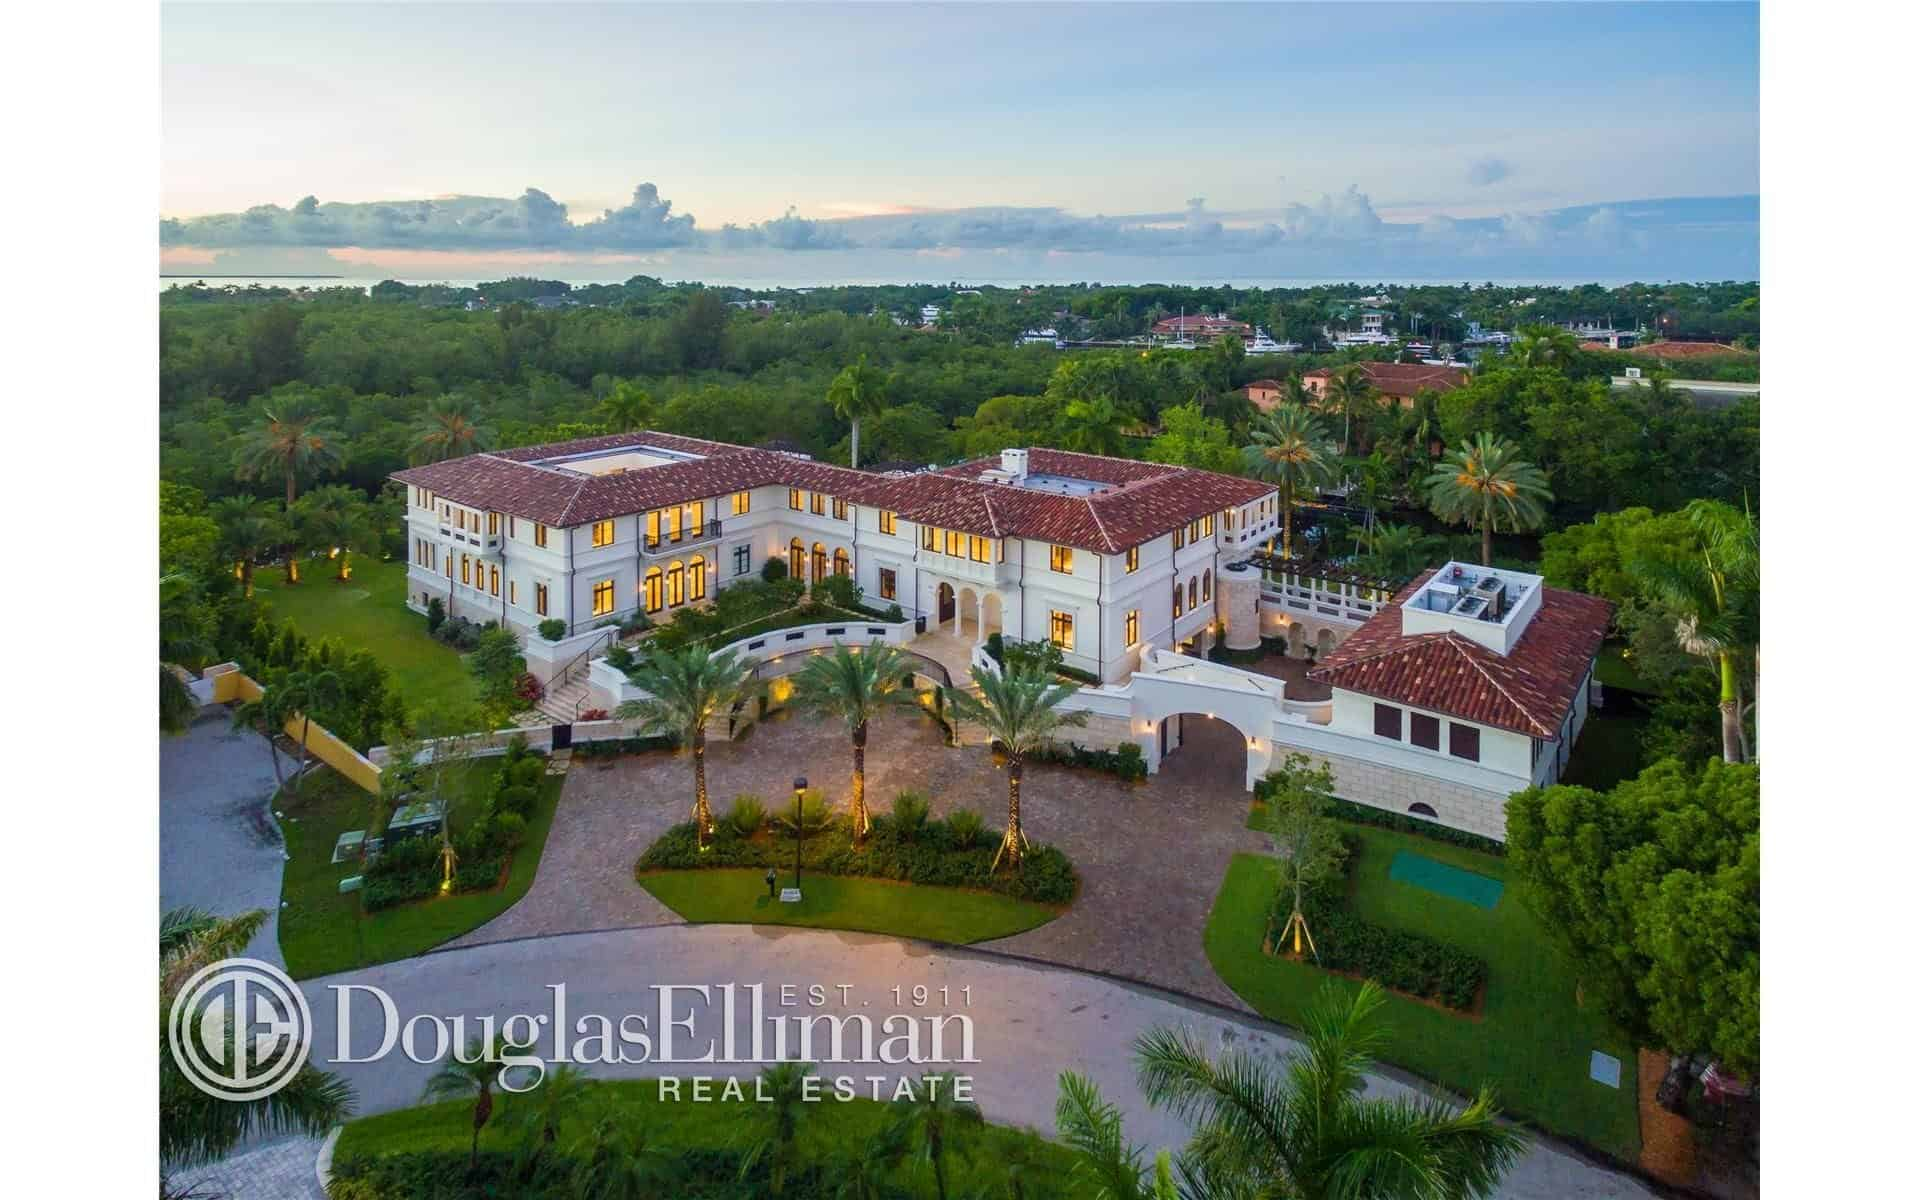 Aerial view of the mansion showcasing the beautiful architecture and landscaping.